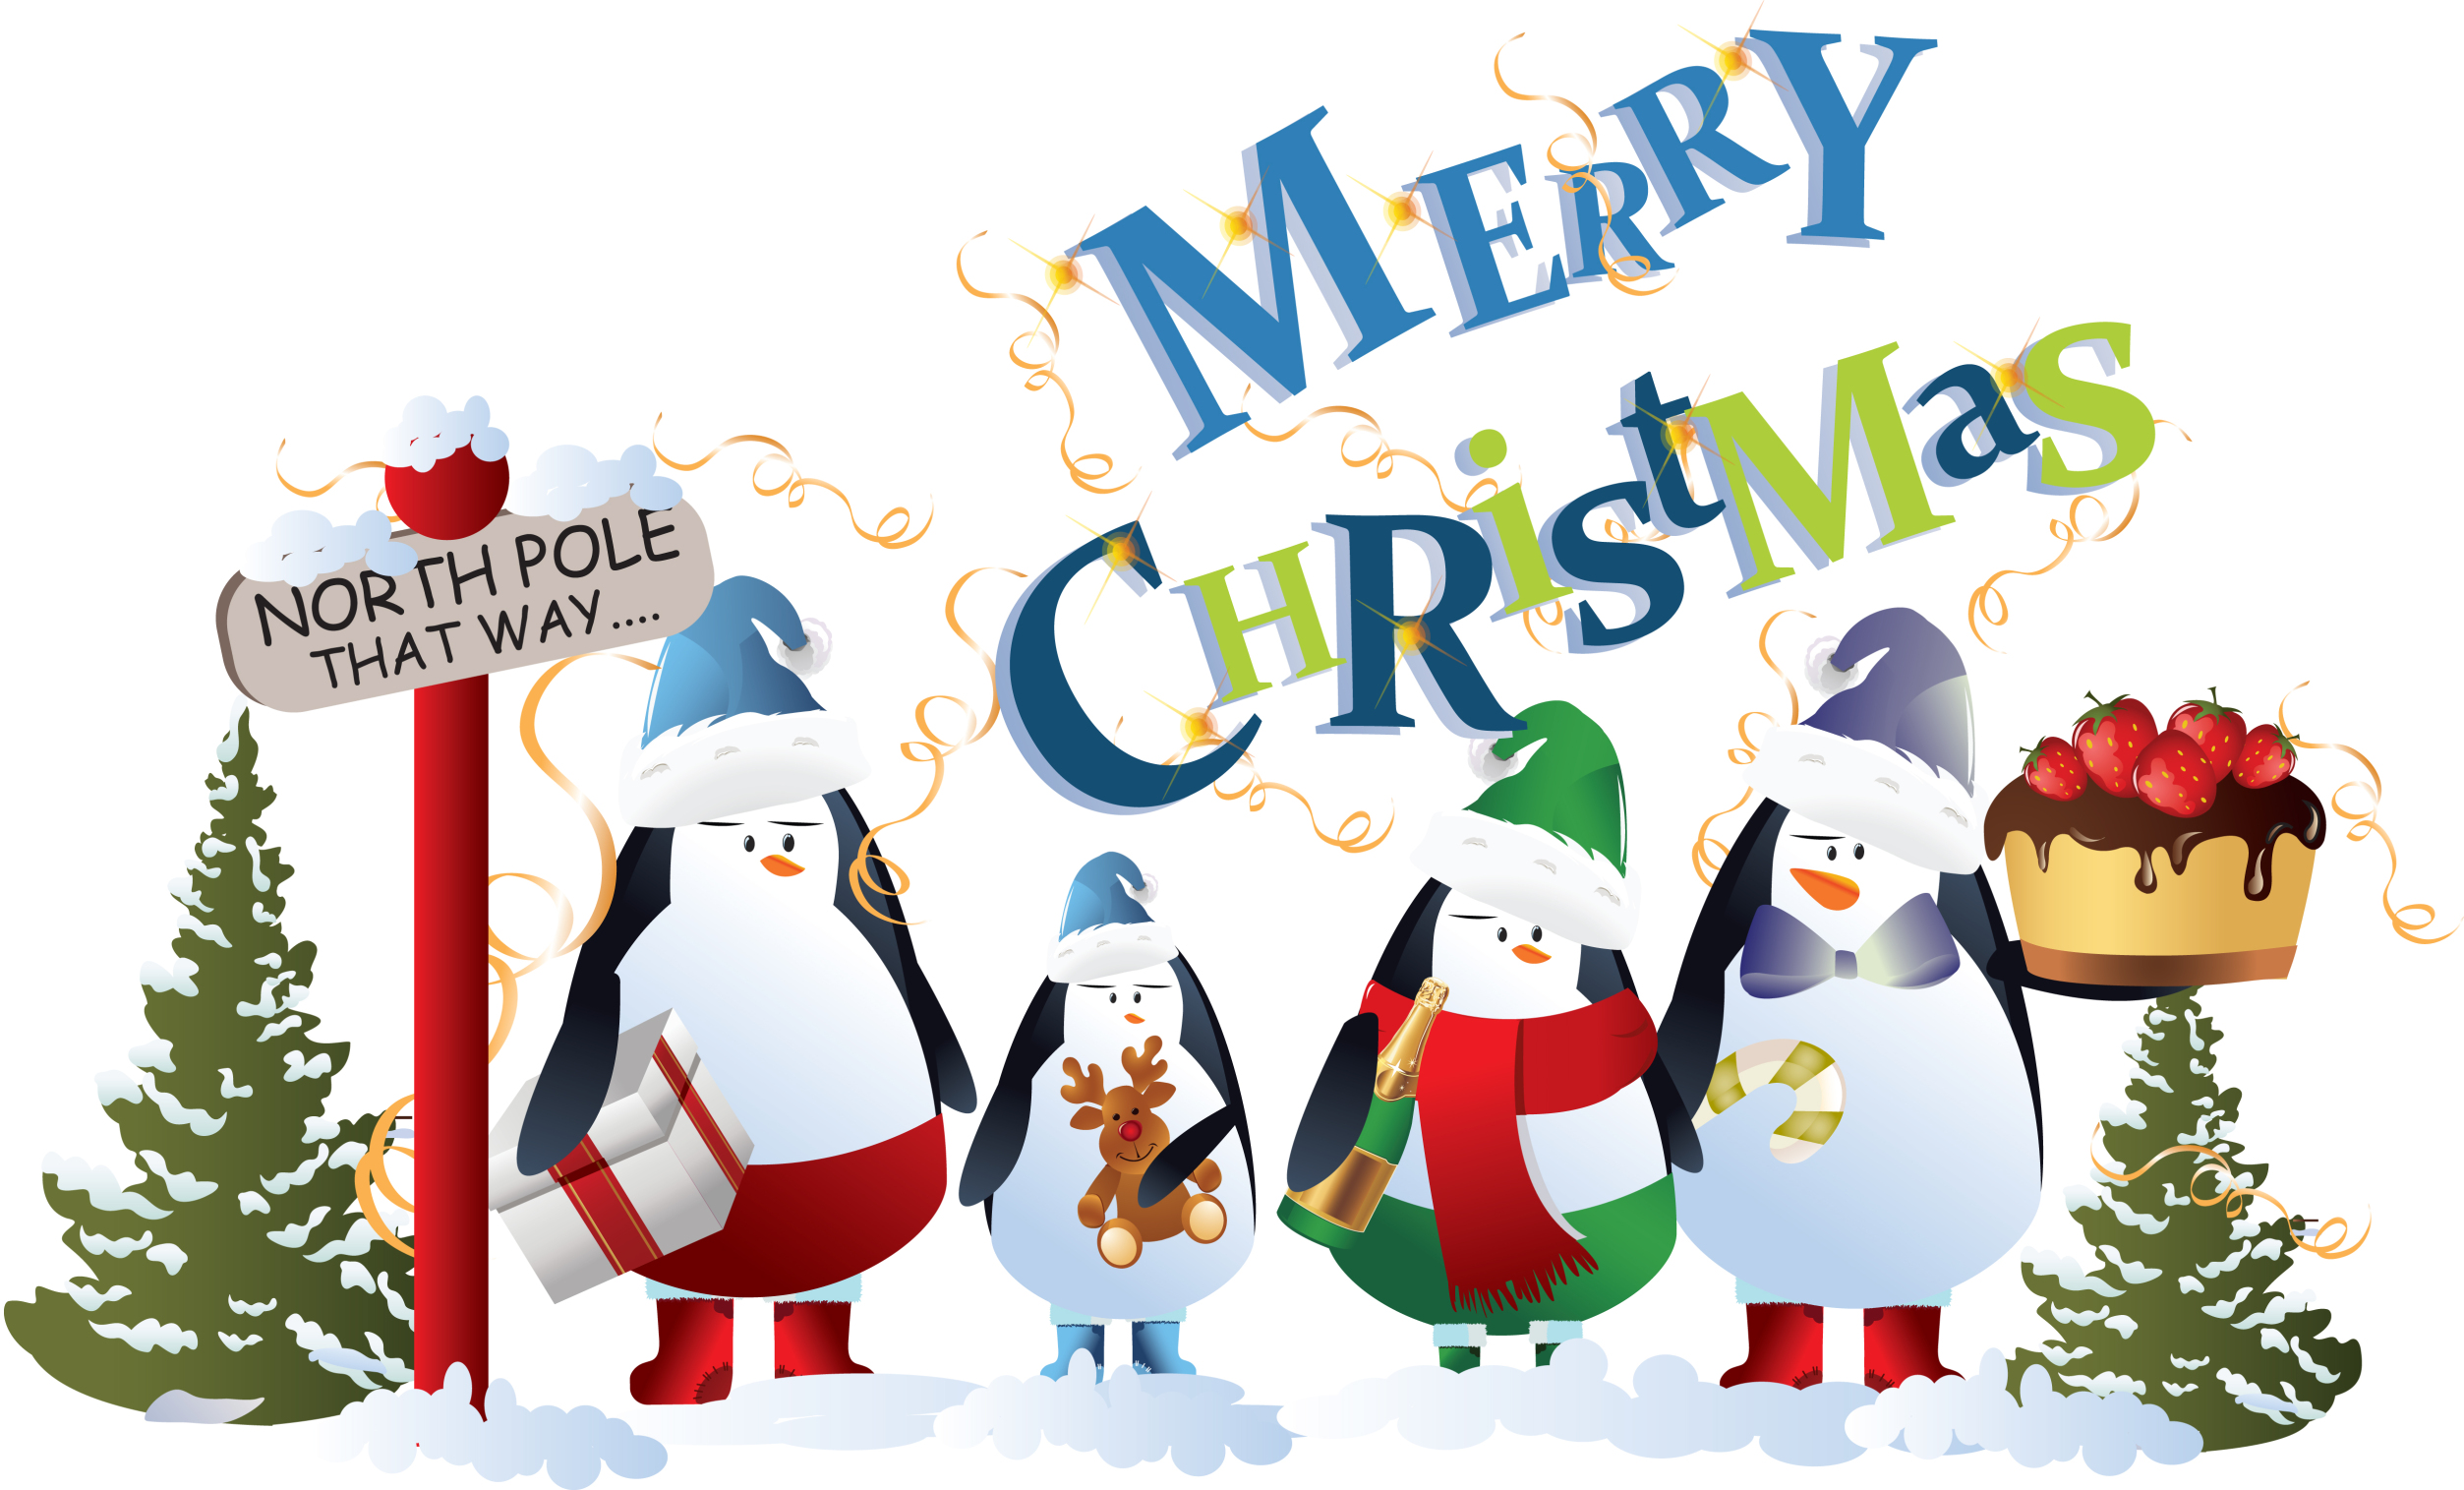 merryxmaspenguins